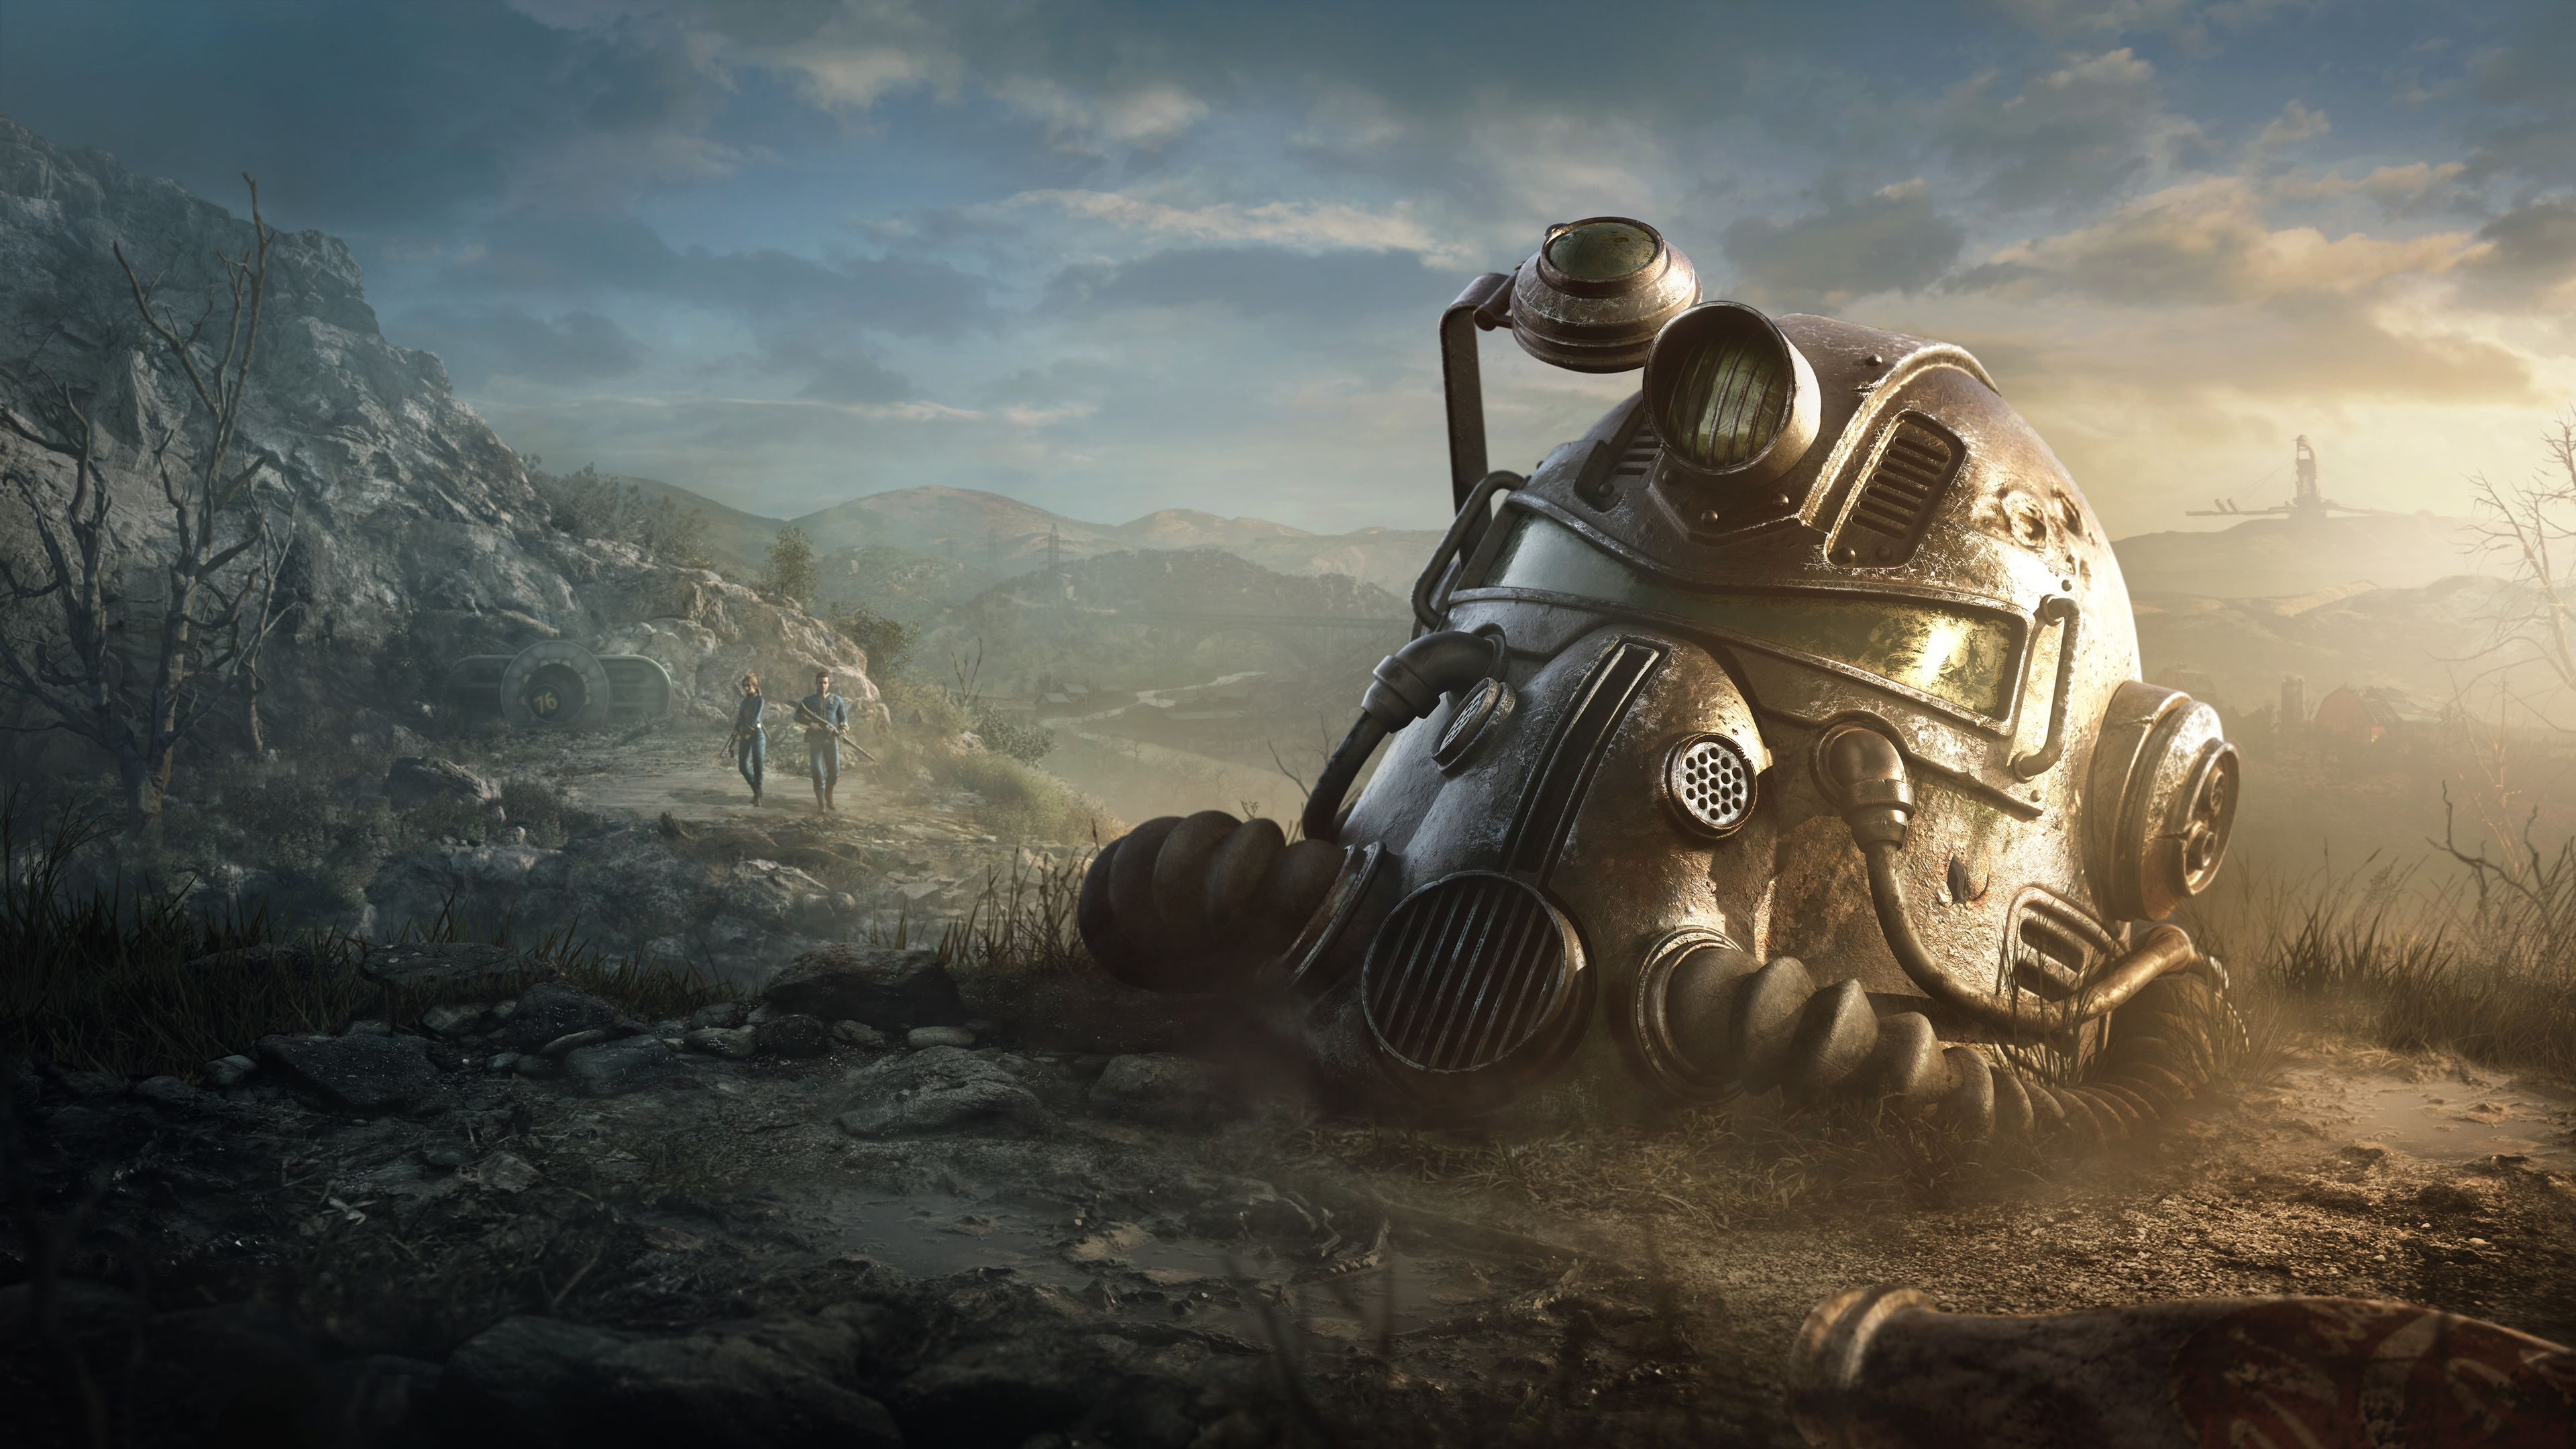 2018 Fallout 76 5k Hd Wallpapers Games Wallpapers Fallout 76 Wallpapers 5k Wallpapers 4k Wallpapers 2018 Games Wallpapers Fallout Game Fallout Power Armor